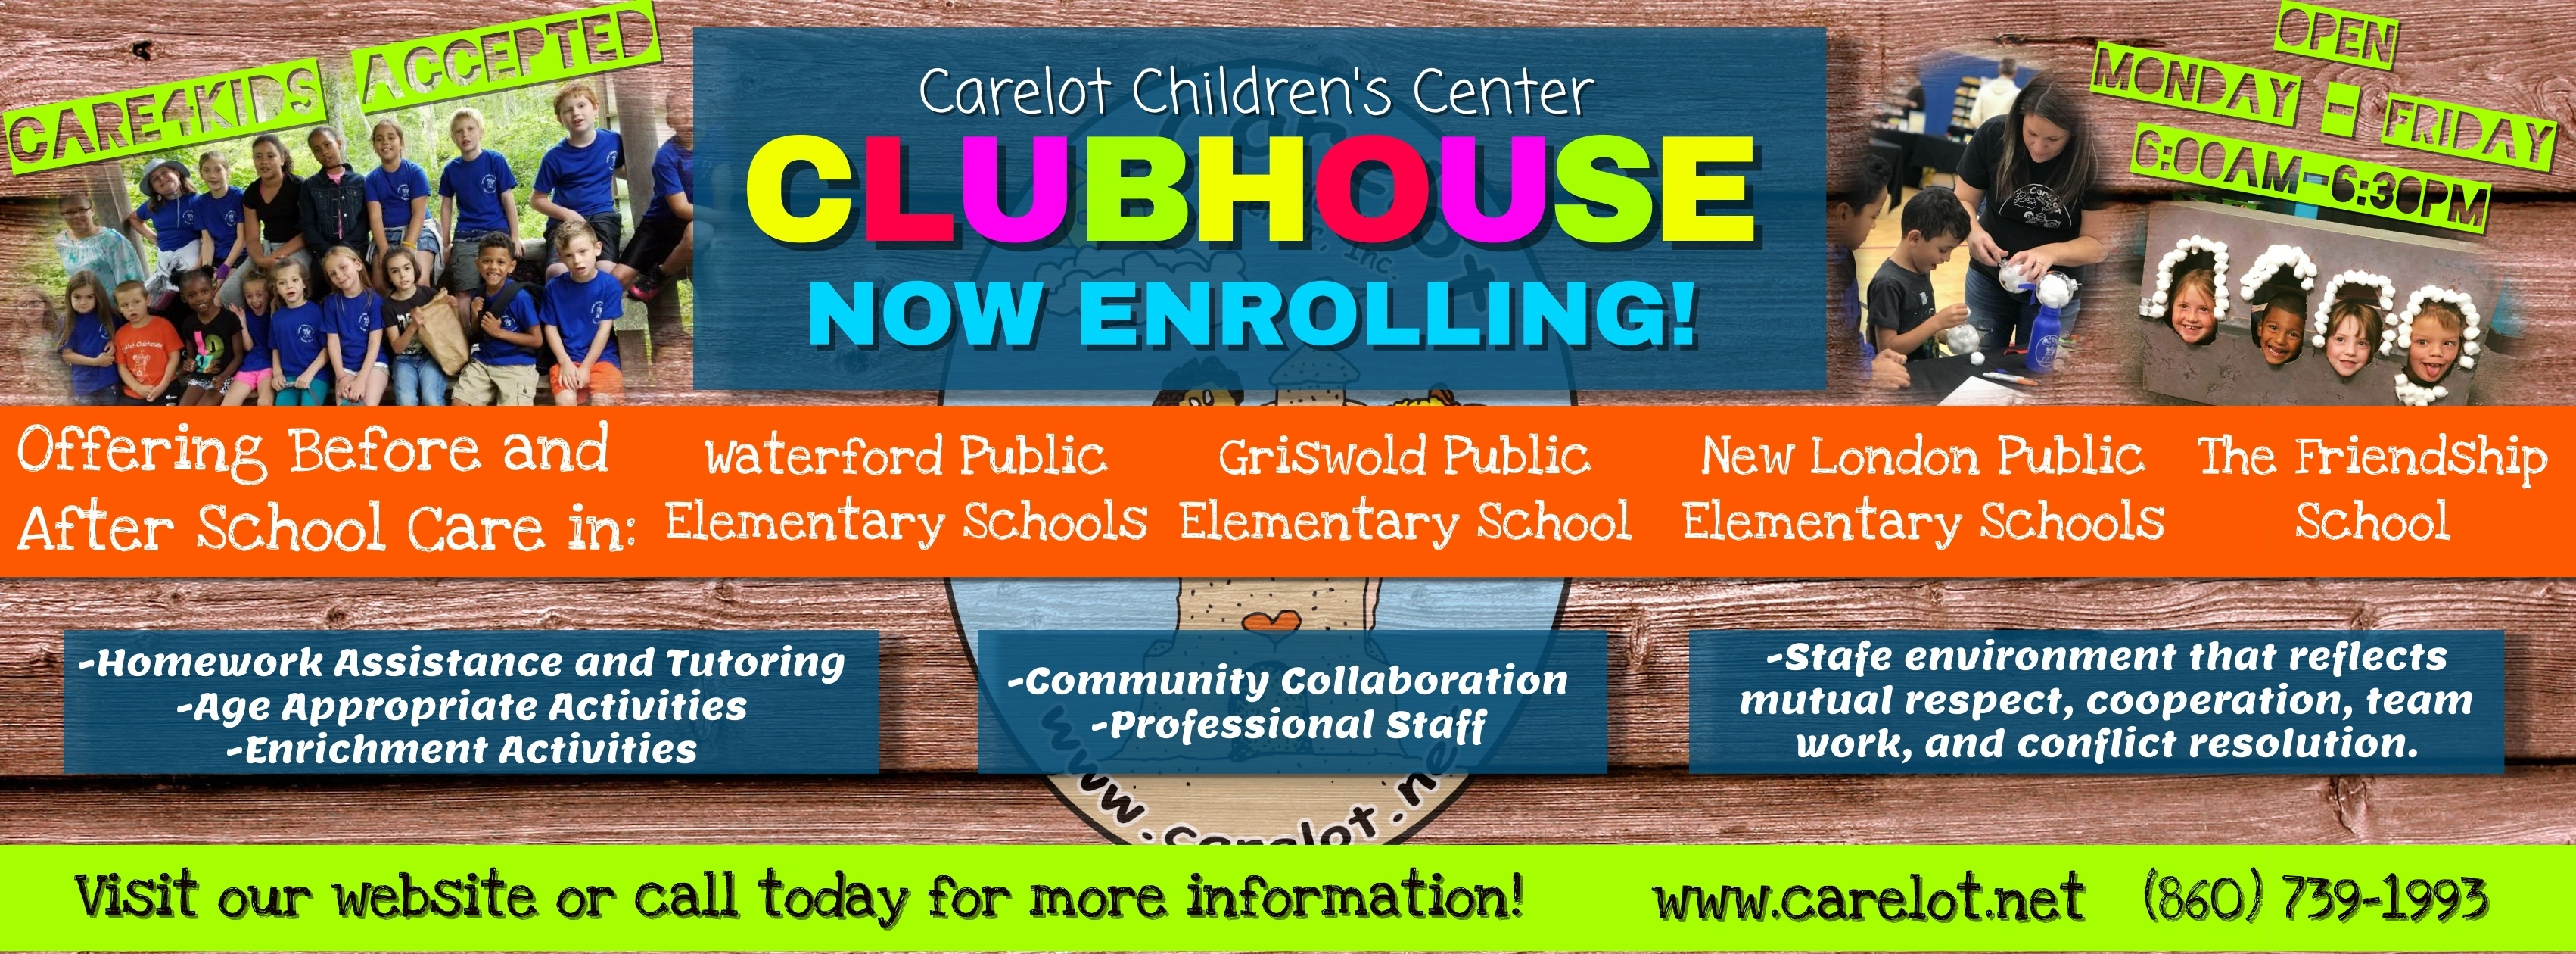 Clubhouse Enrollment